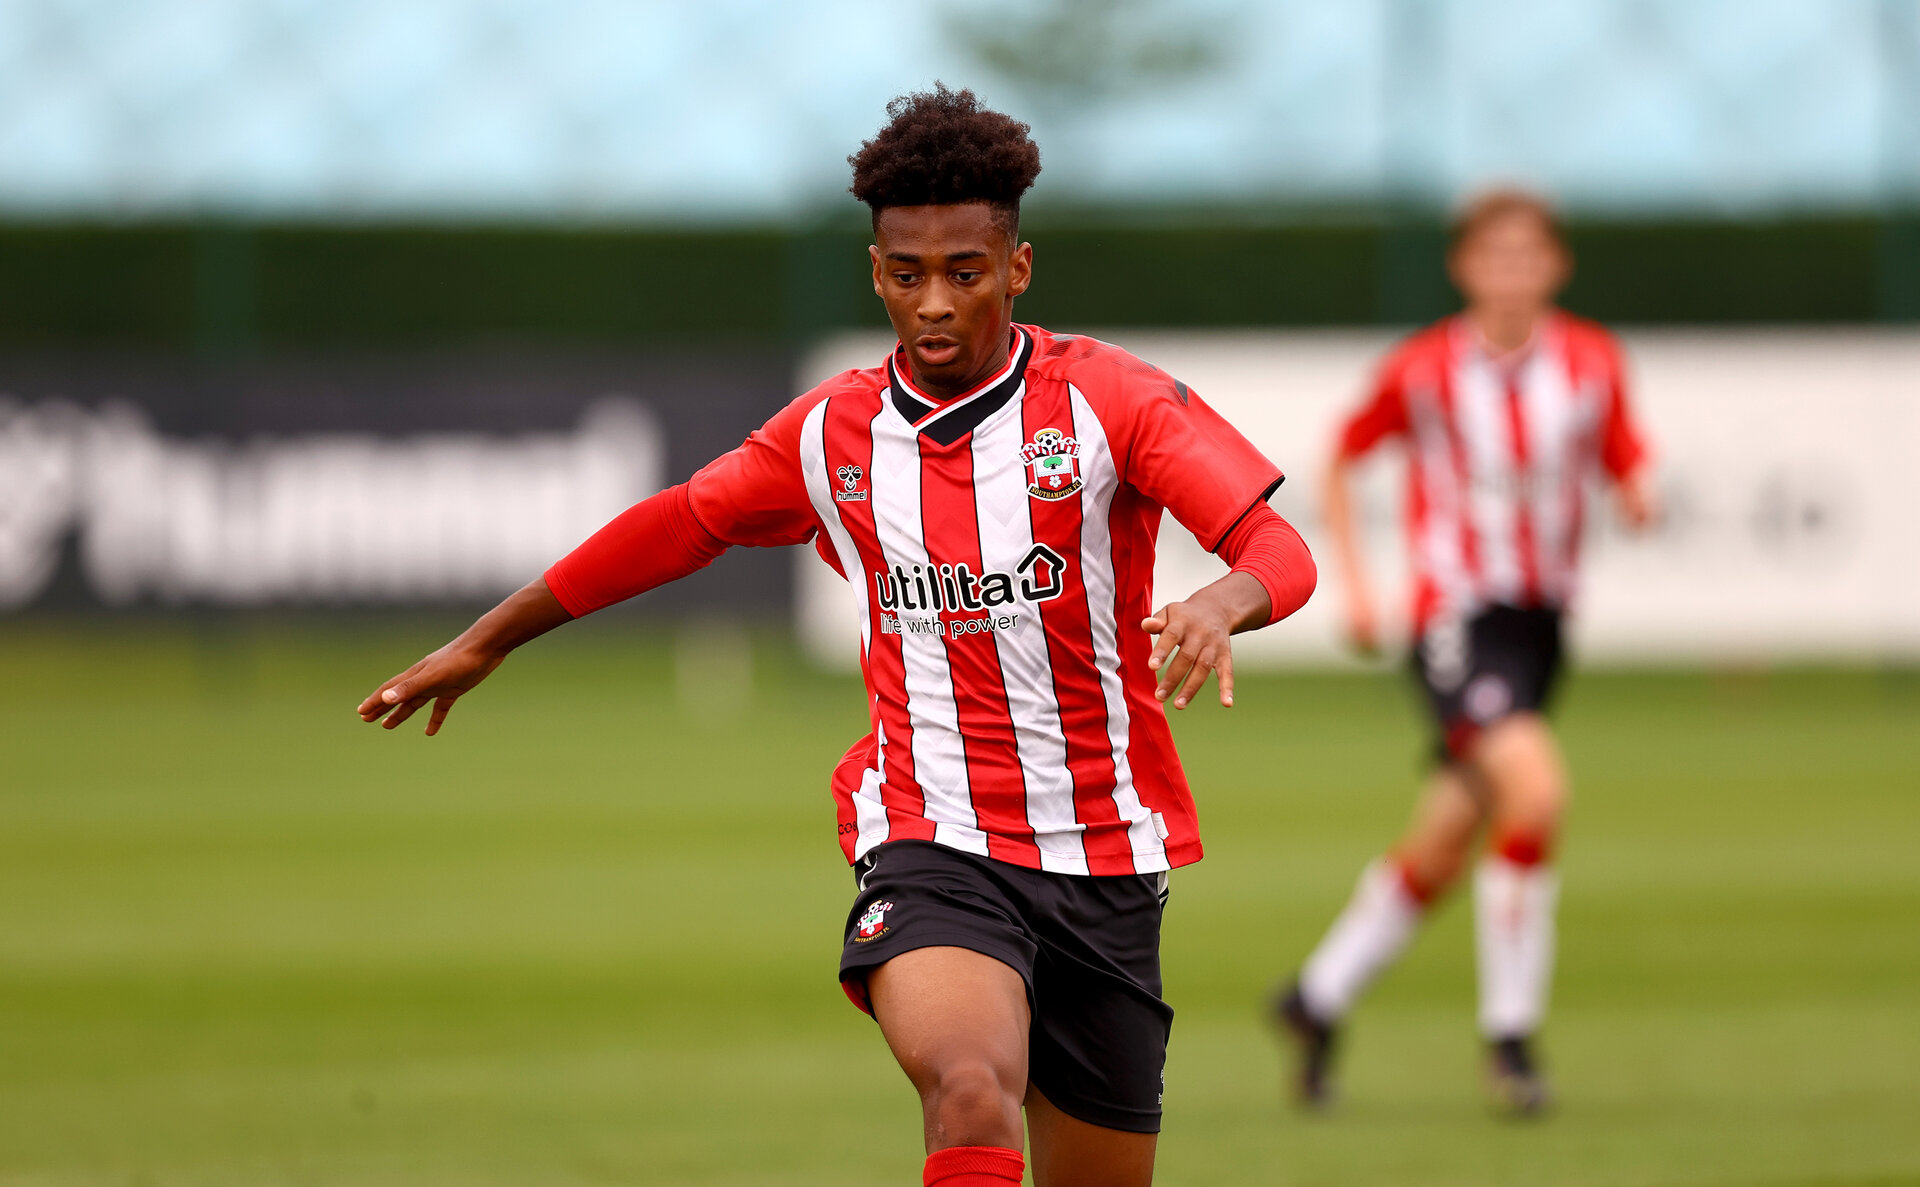 SOUTHAMPTON, ENGLAND - AUGUST 21: Fedel Ross-Lang during the U18 PL match between Southampton FC U18 and Birmingham City U18, at the Staplewood Campus on August 21, 2021 in Southampton, England. (Photo by Matt Watson/Southampton FC)